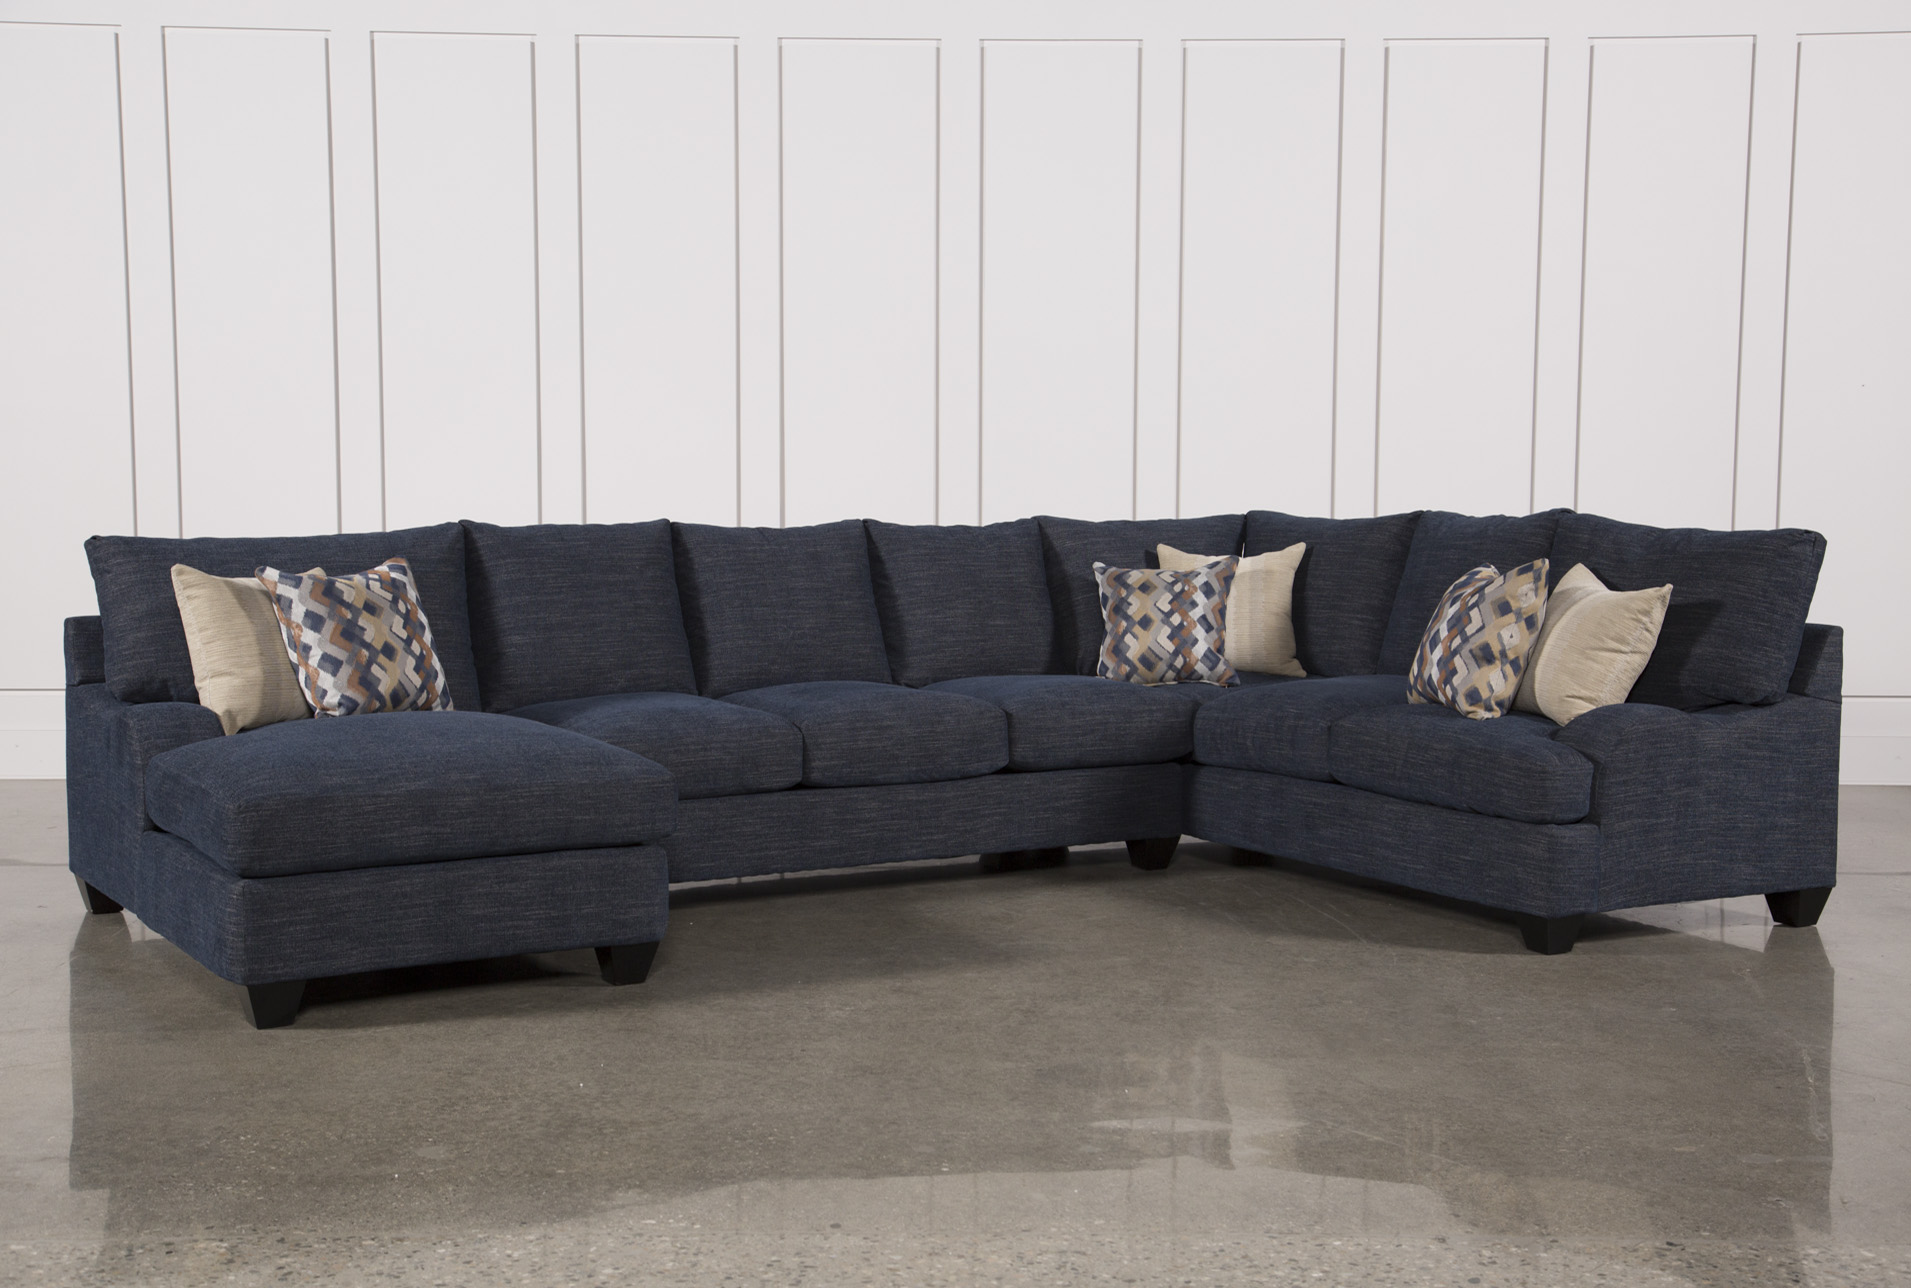 3 sided sectional sofa difference between couch and chair three piece sierra down w